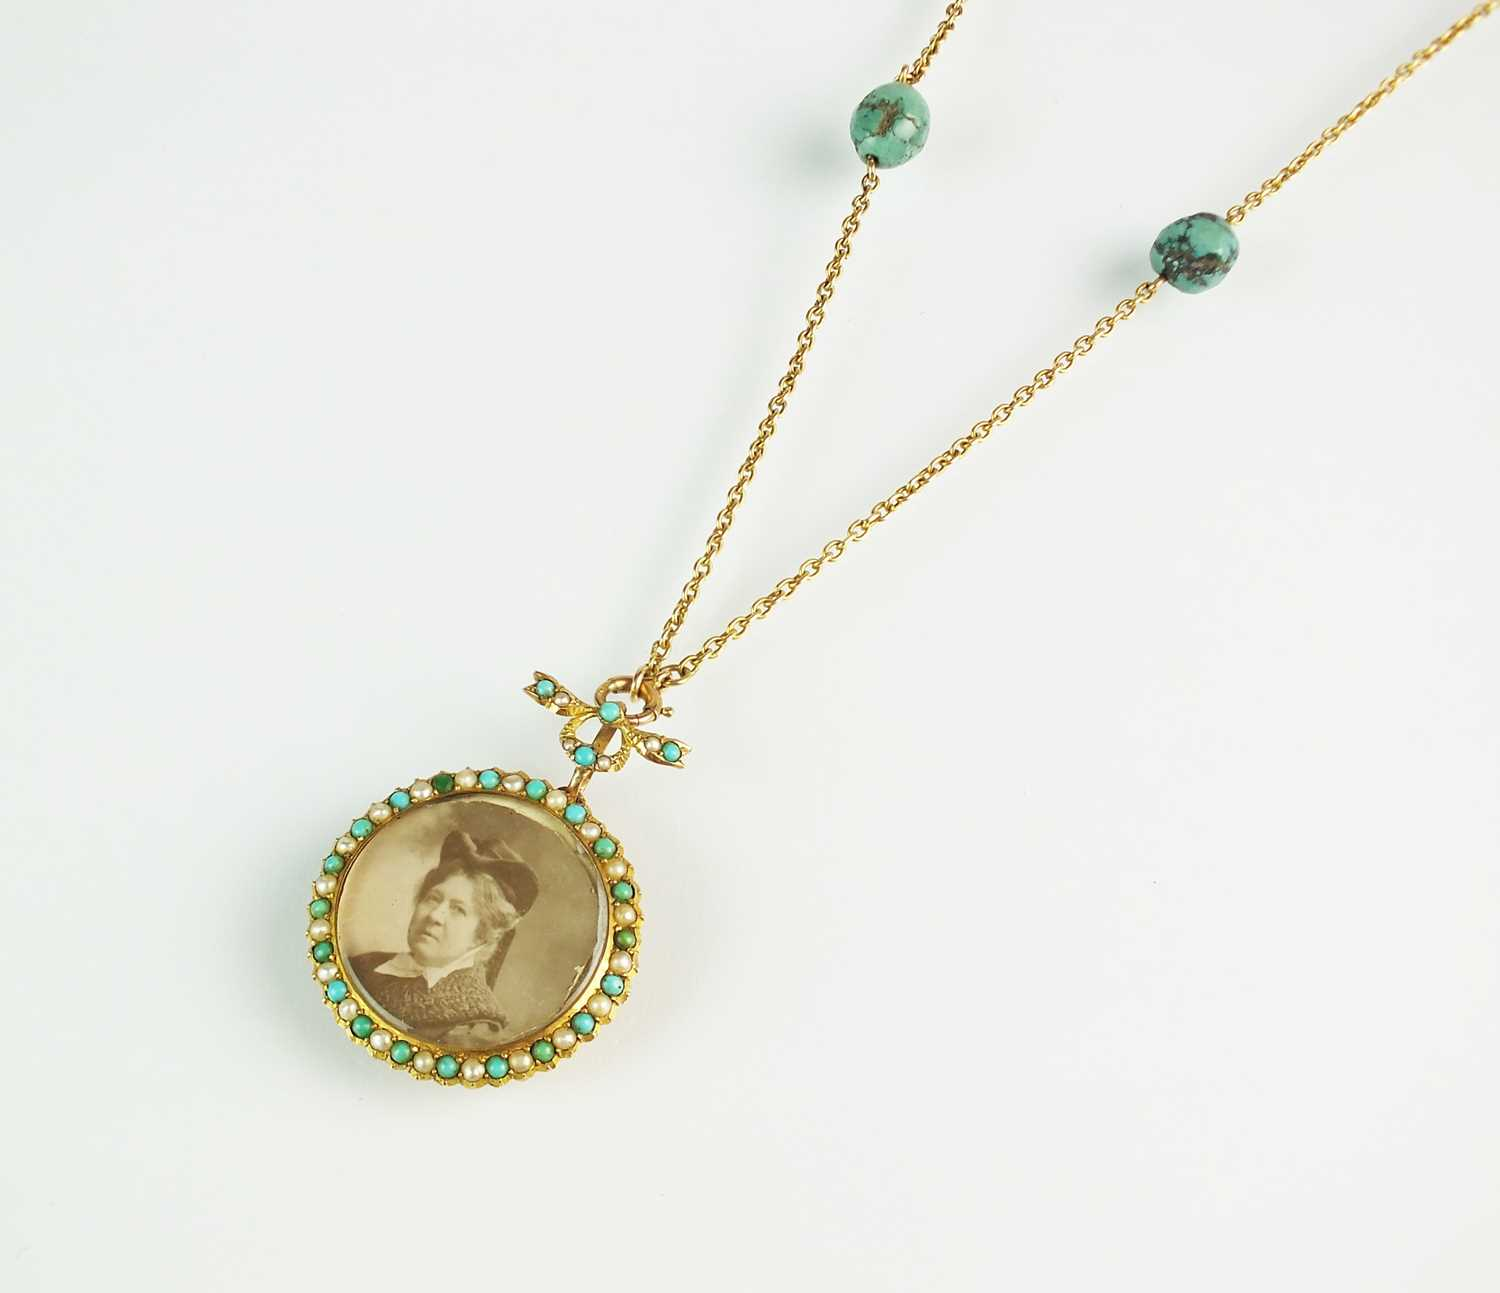 A turquoise and split pearl circular locket pendant